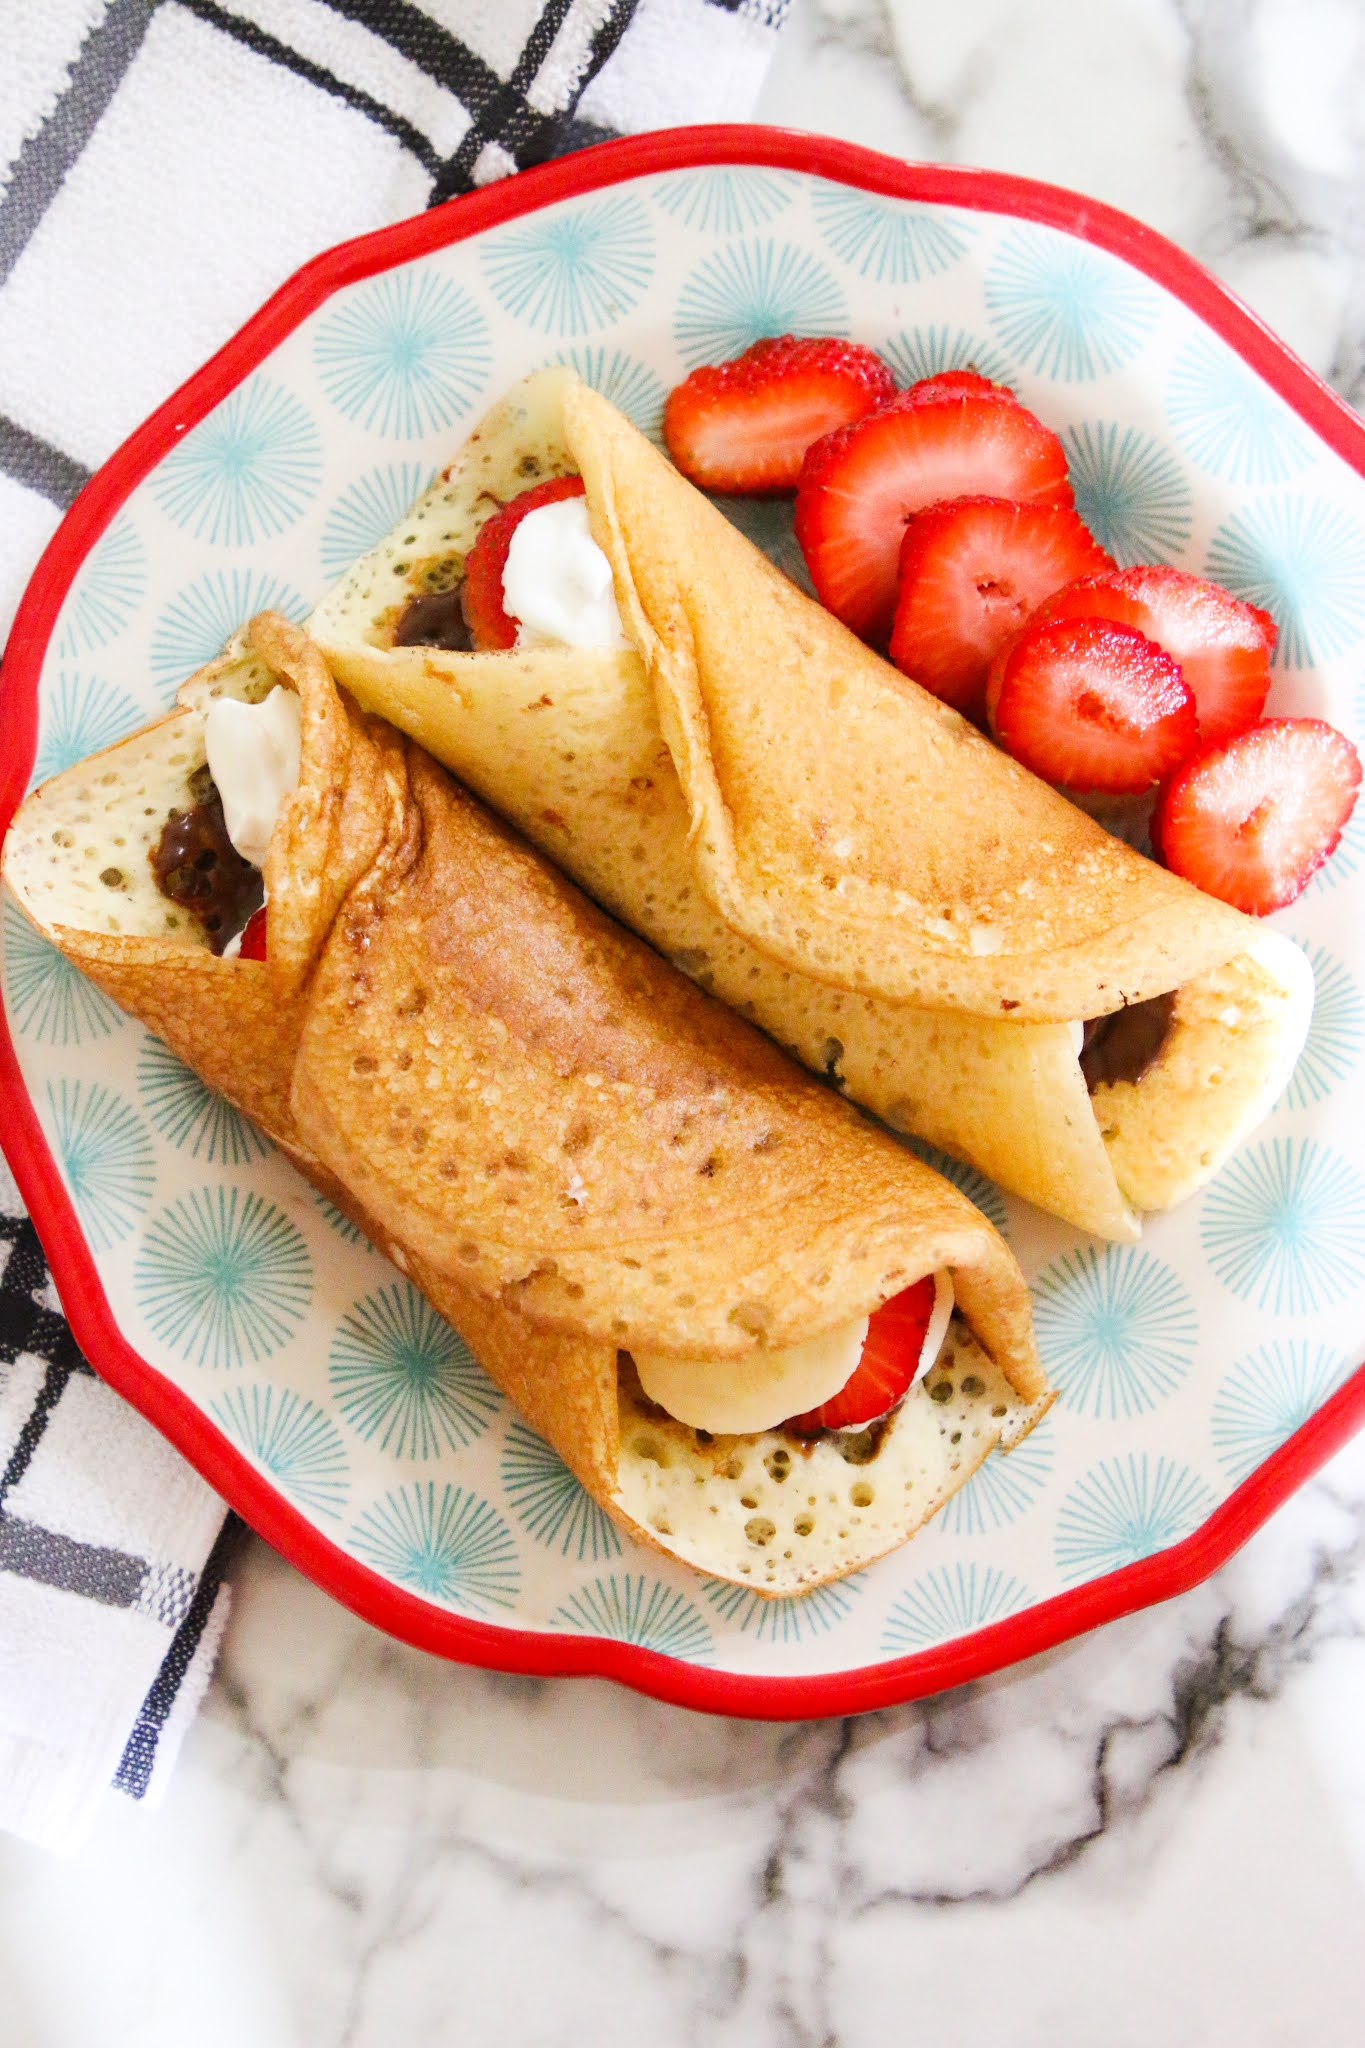 How To Make Crepes From Pancake Mix